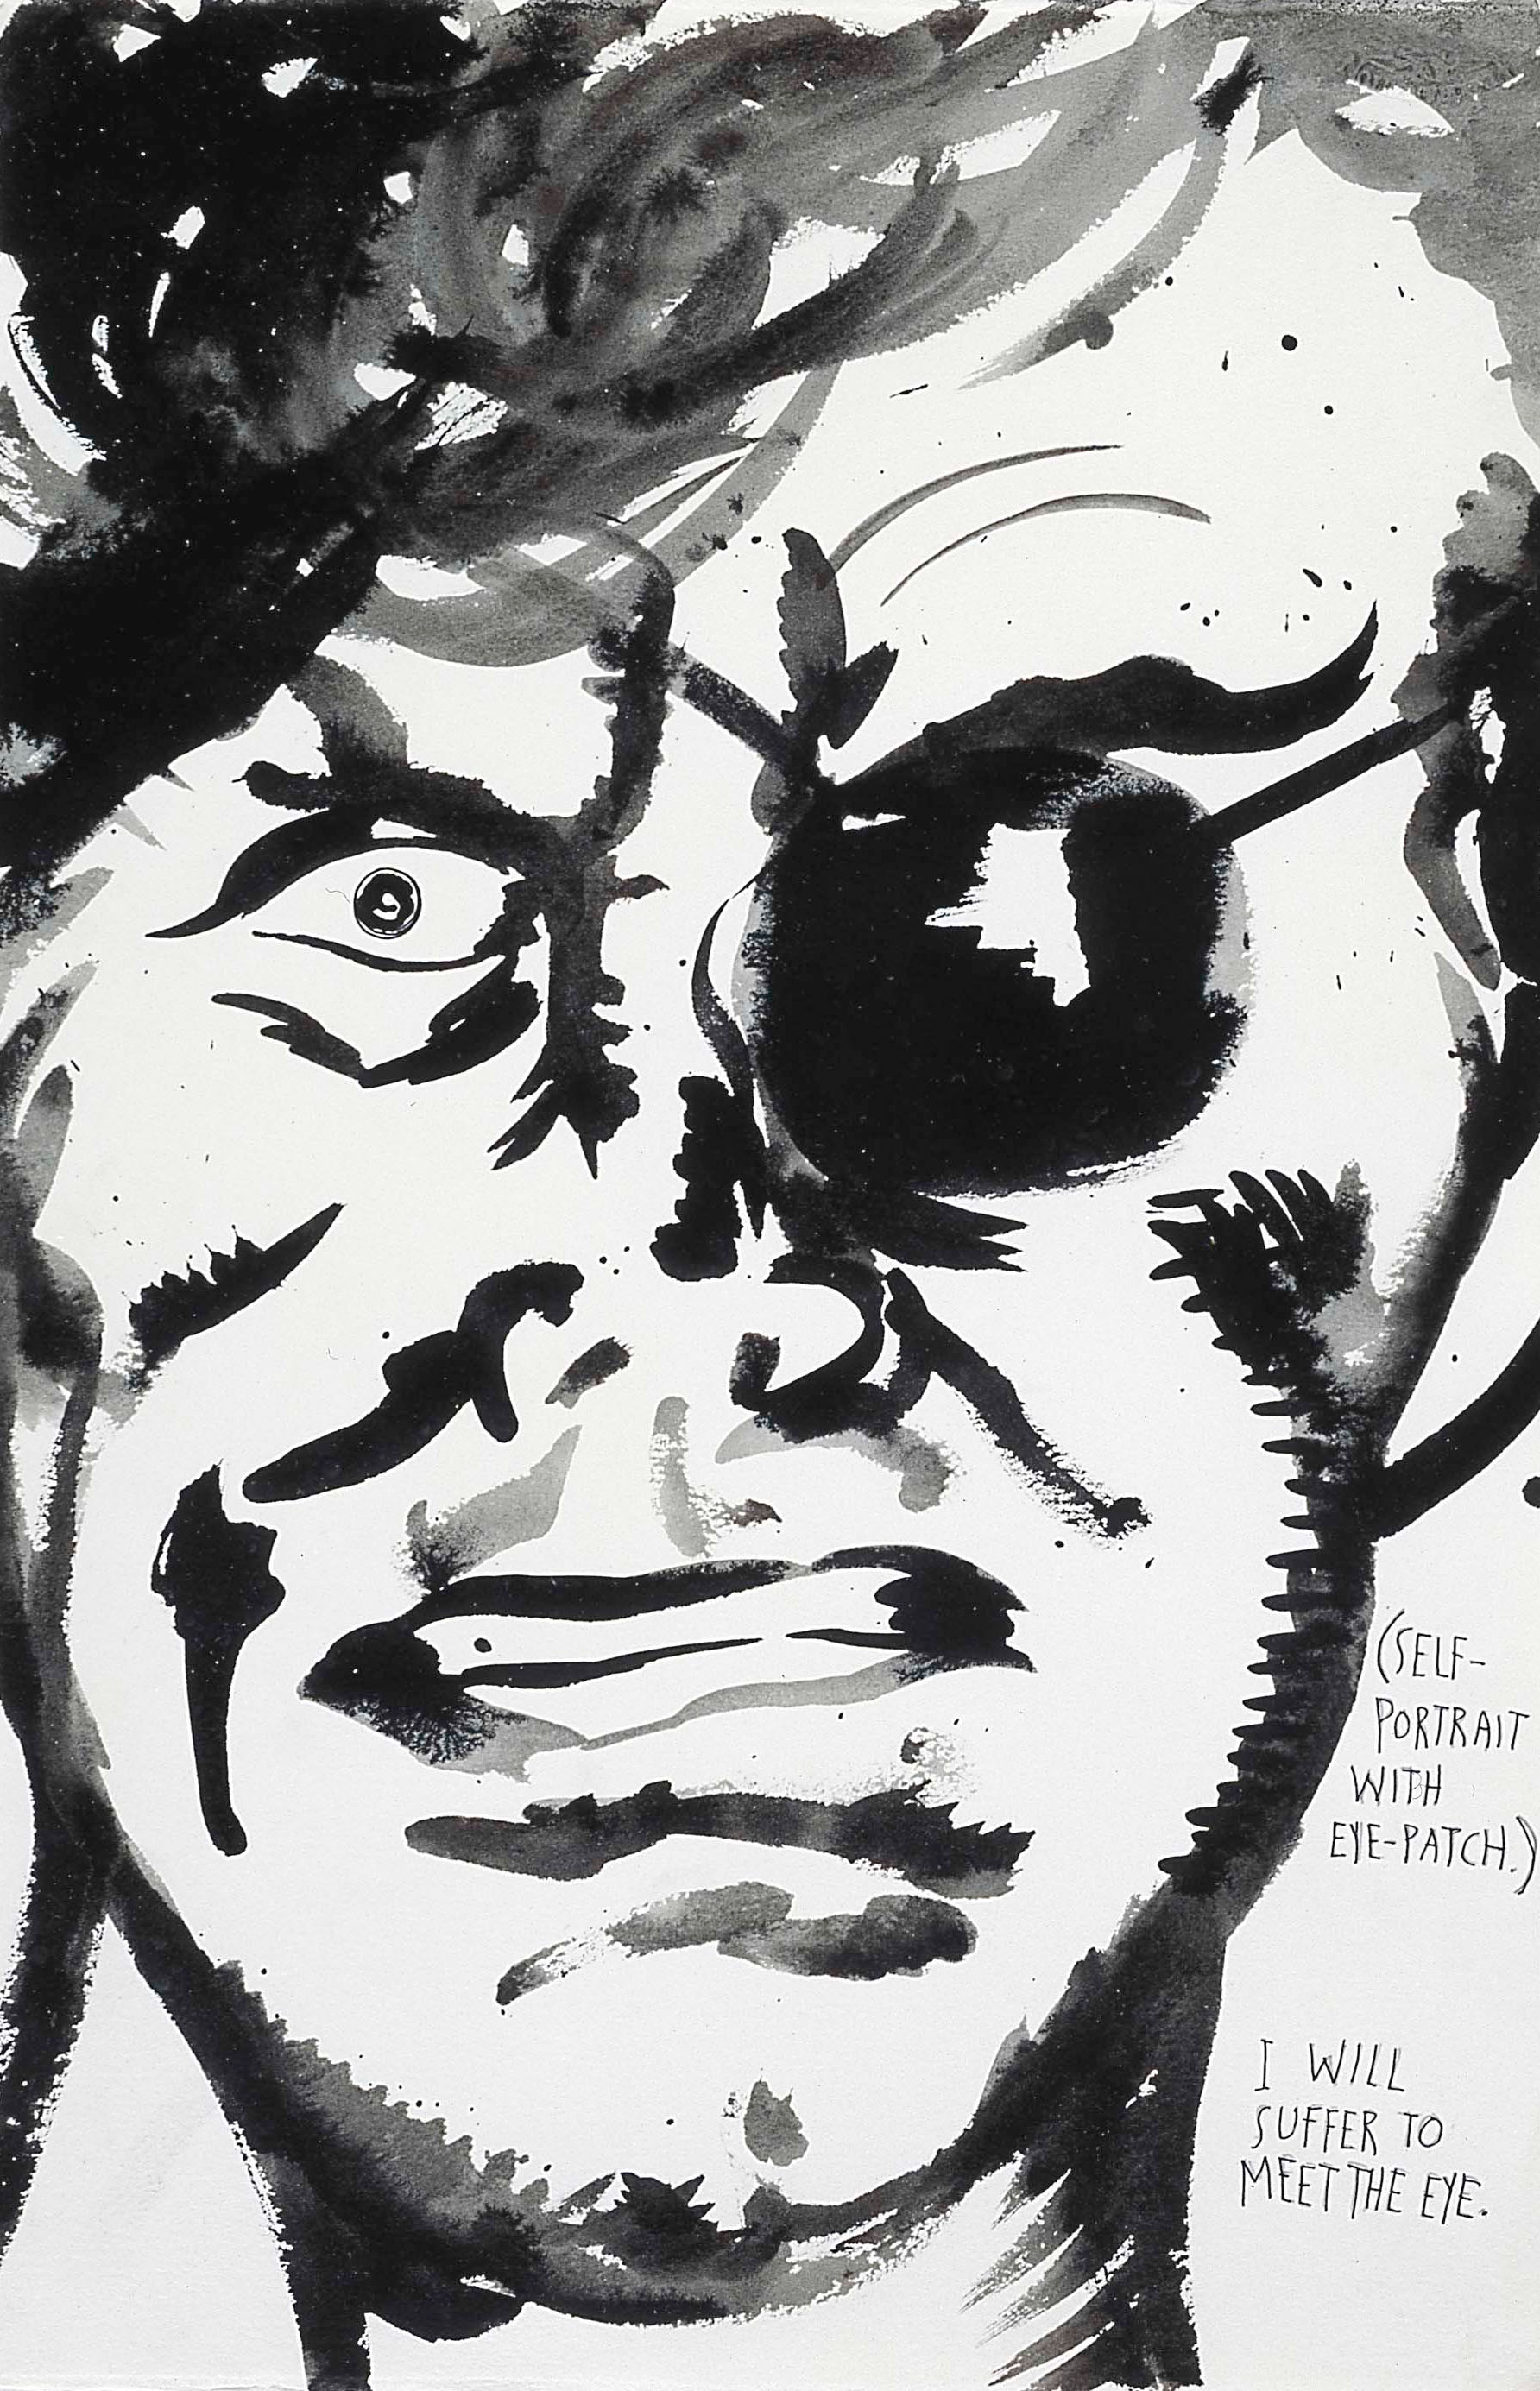 Raymond Pettibon: untitled (Self-portrait with eye-patch), 1998. Schreibstift und Tusche auf Papier. 57,1 x 38,1 cm. © Raymond Pettibon